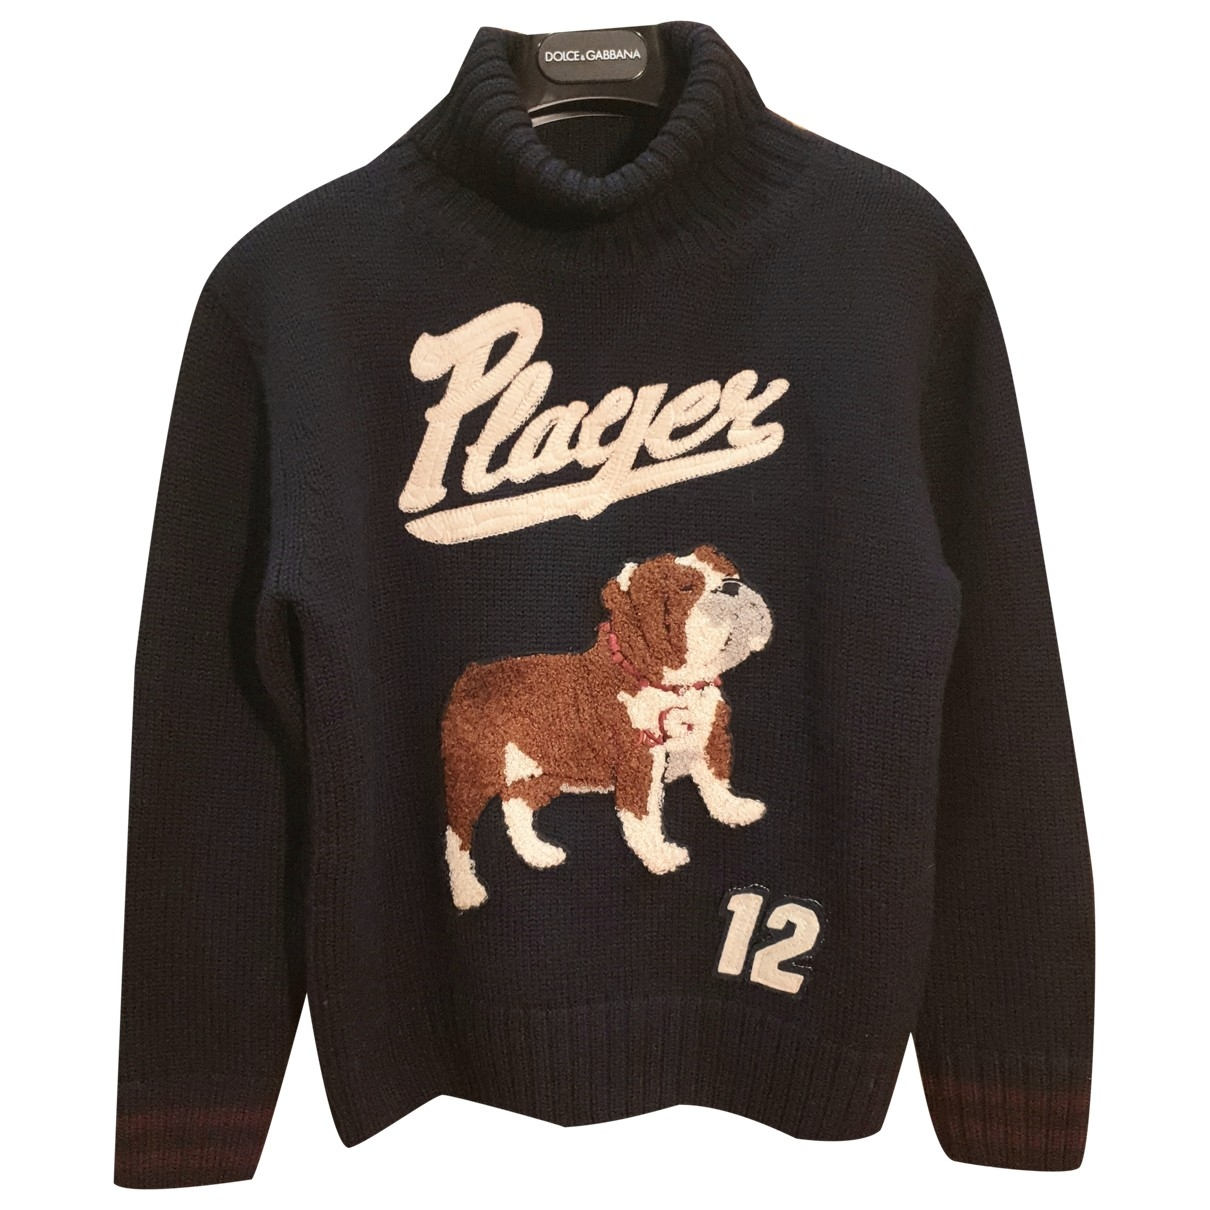 D&g \N Navy Wool Knitwear for Kids 6 years - up to 114cm FR